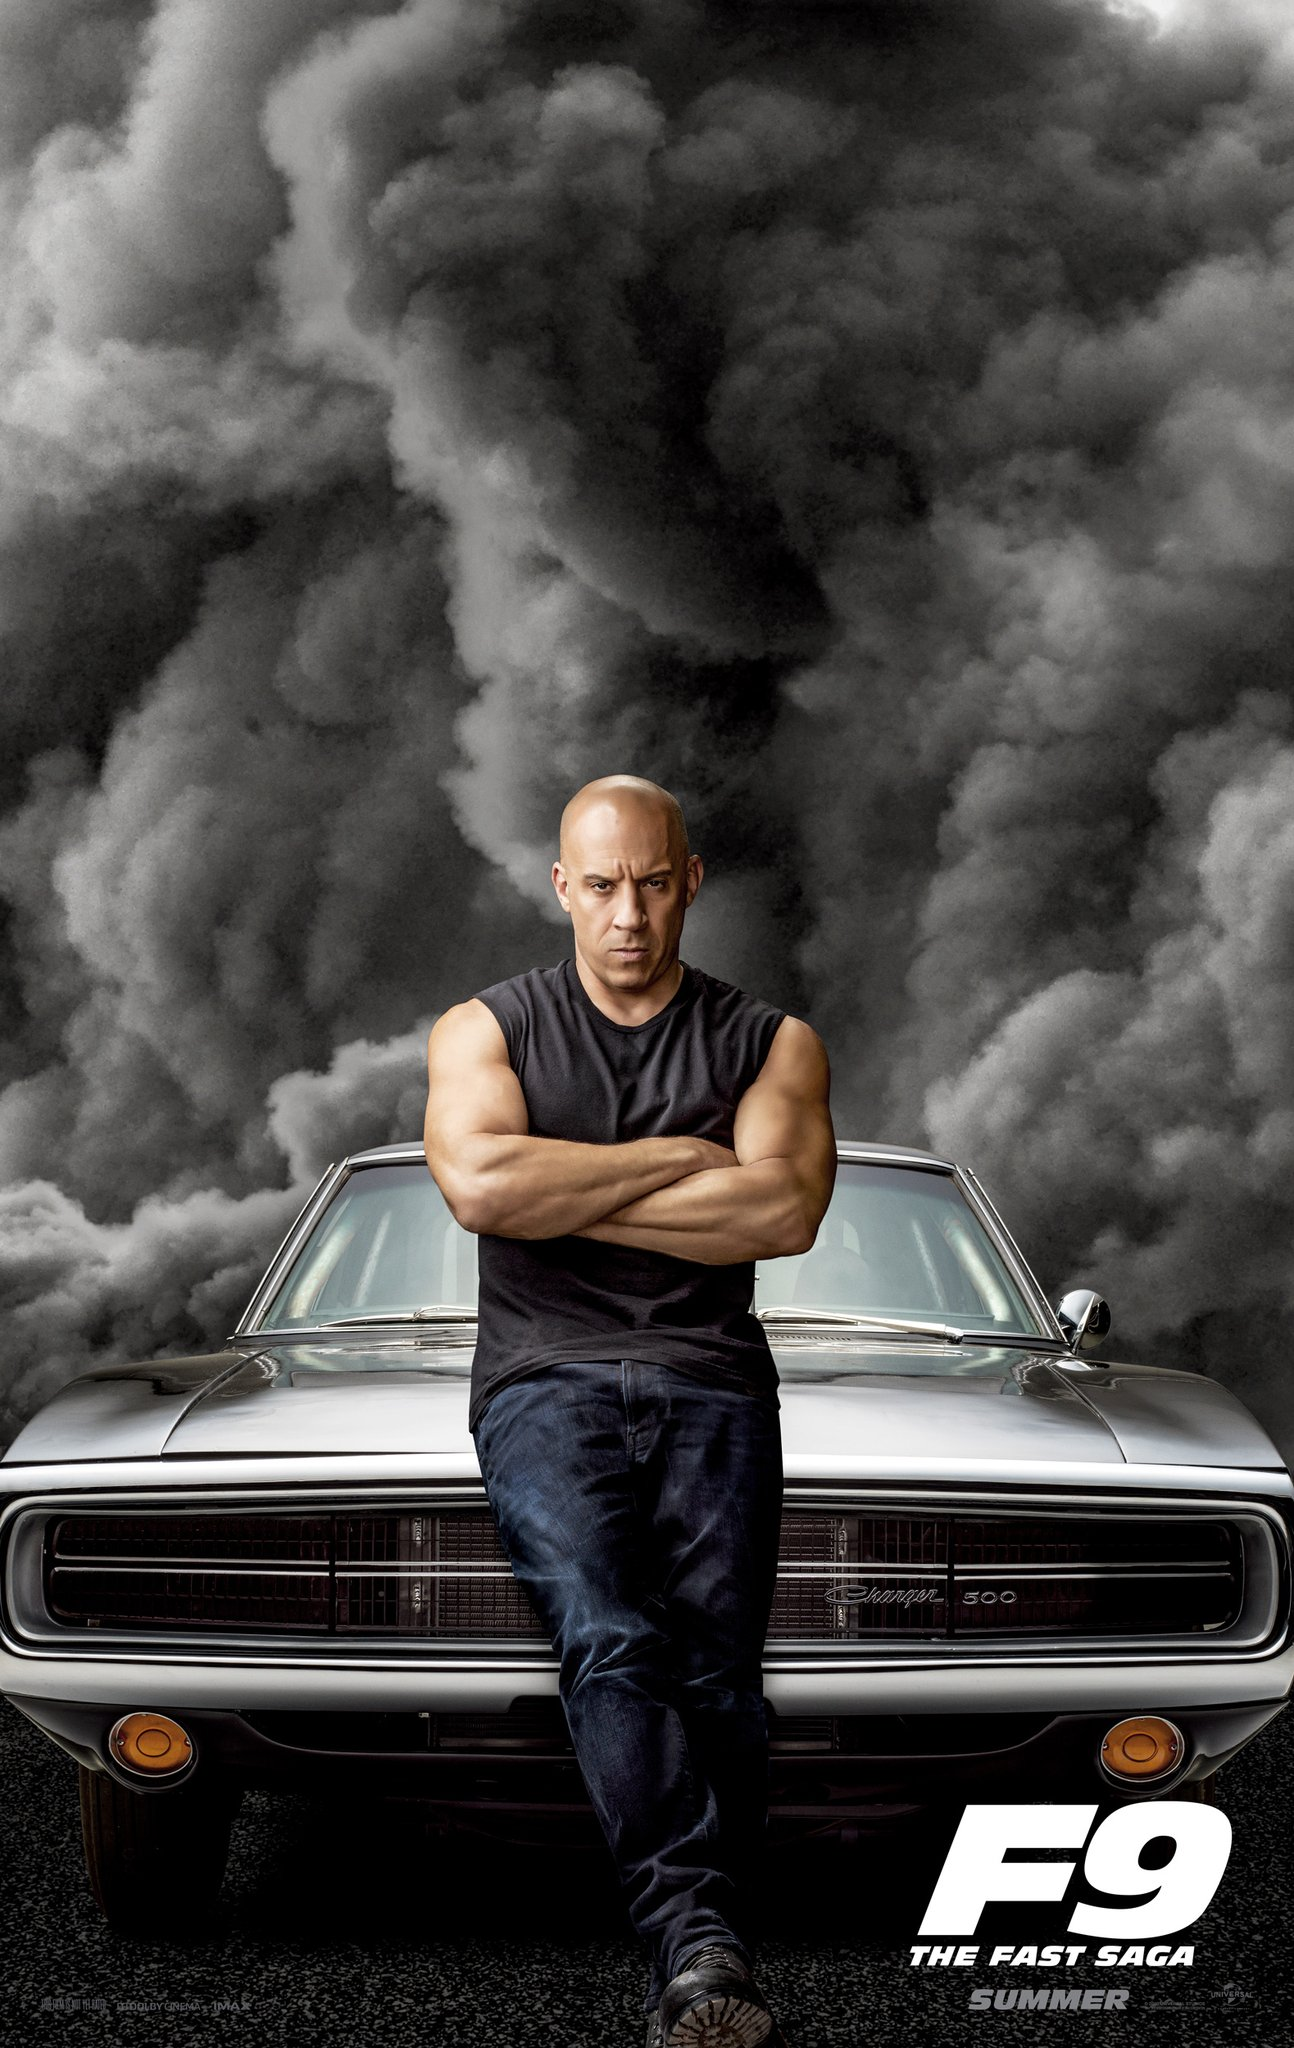 fast and furious 9 - photo #34